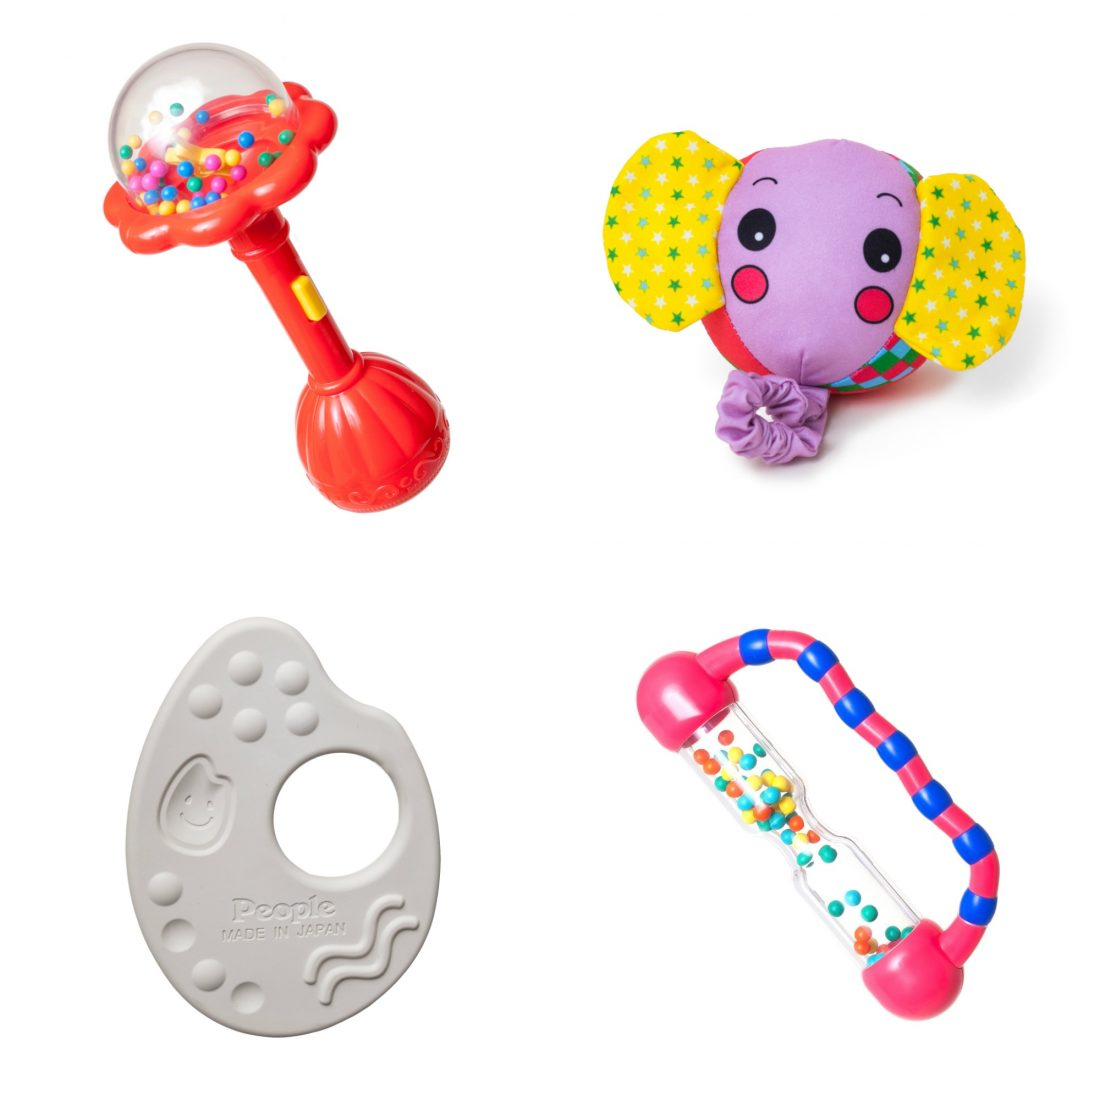 Toys For People : Fun new toys for baby from people toy company of